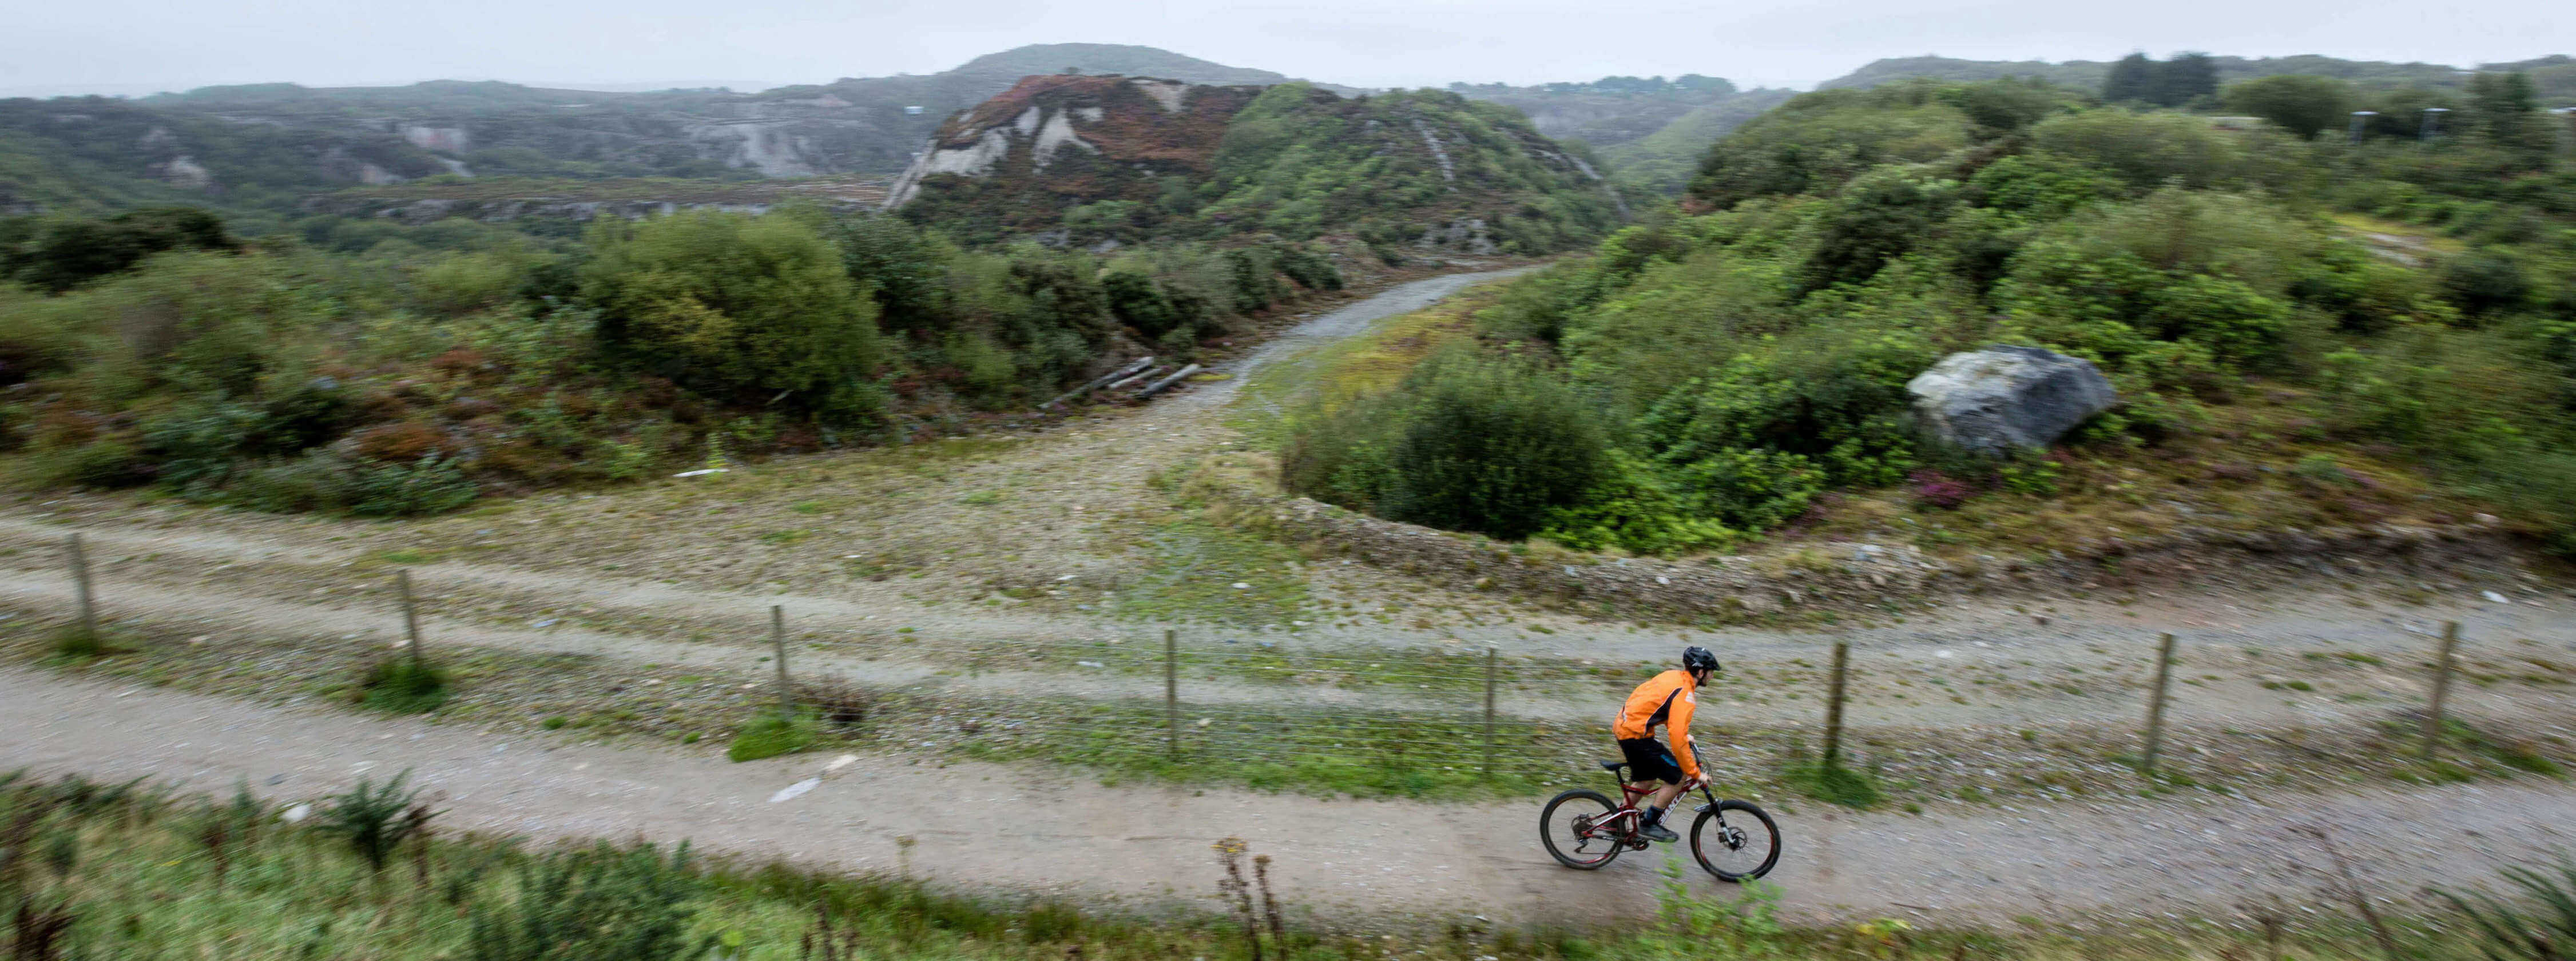 Cycling on the St Austell Clay Trails | St Austell